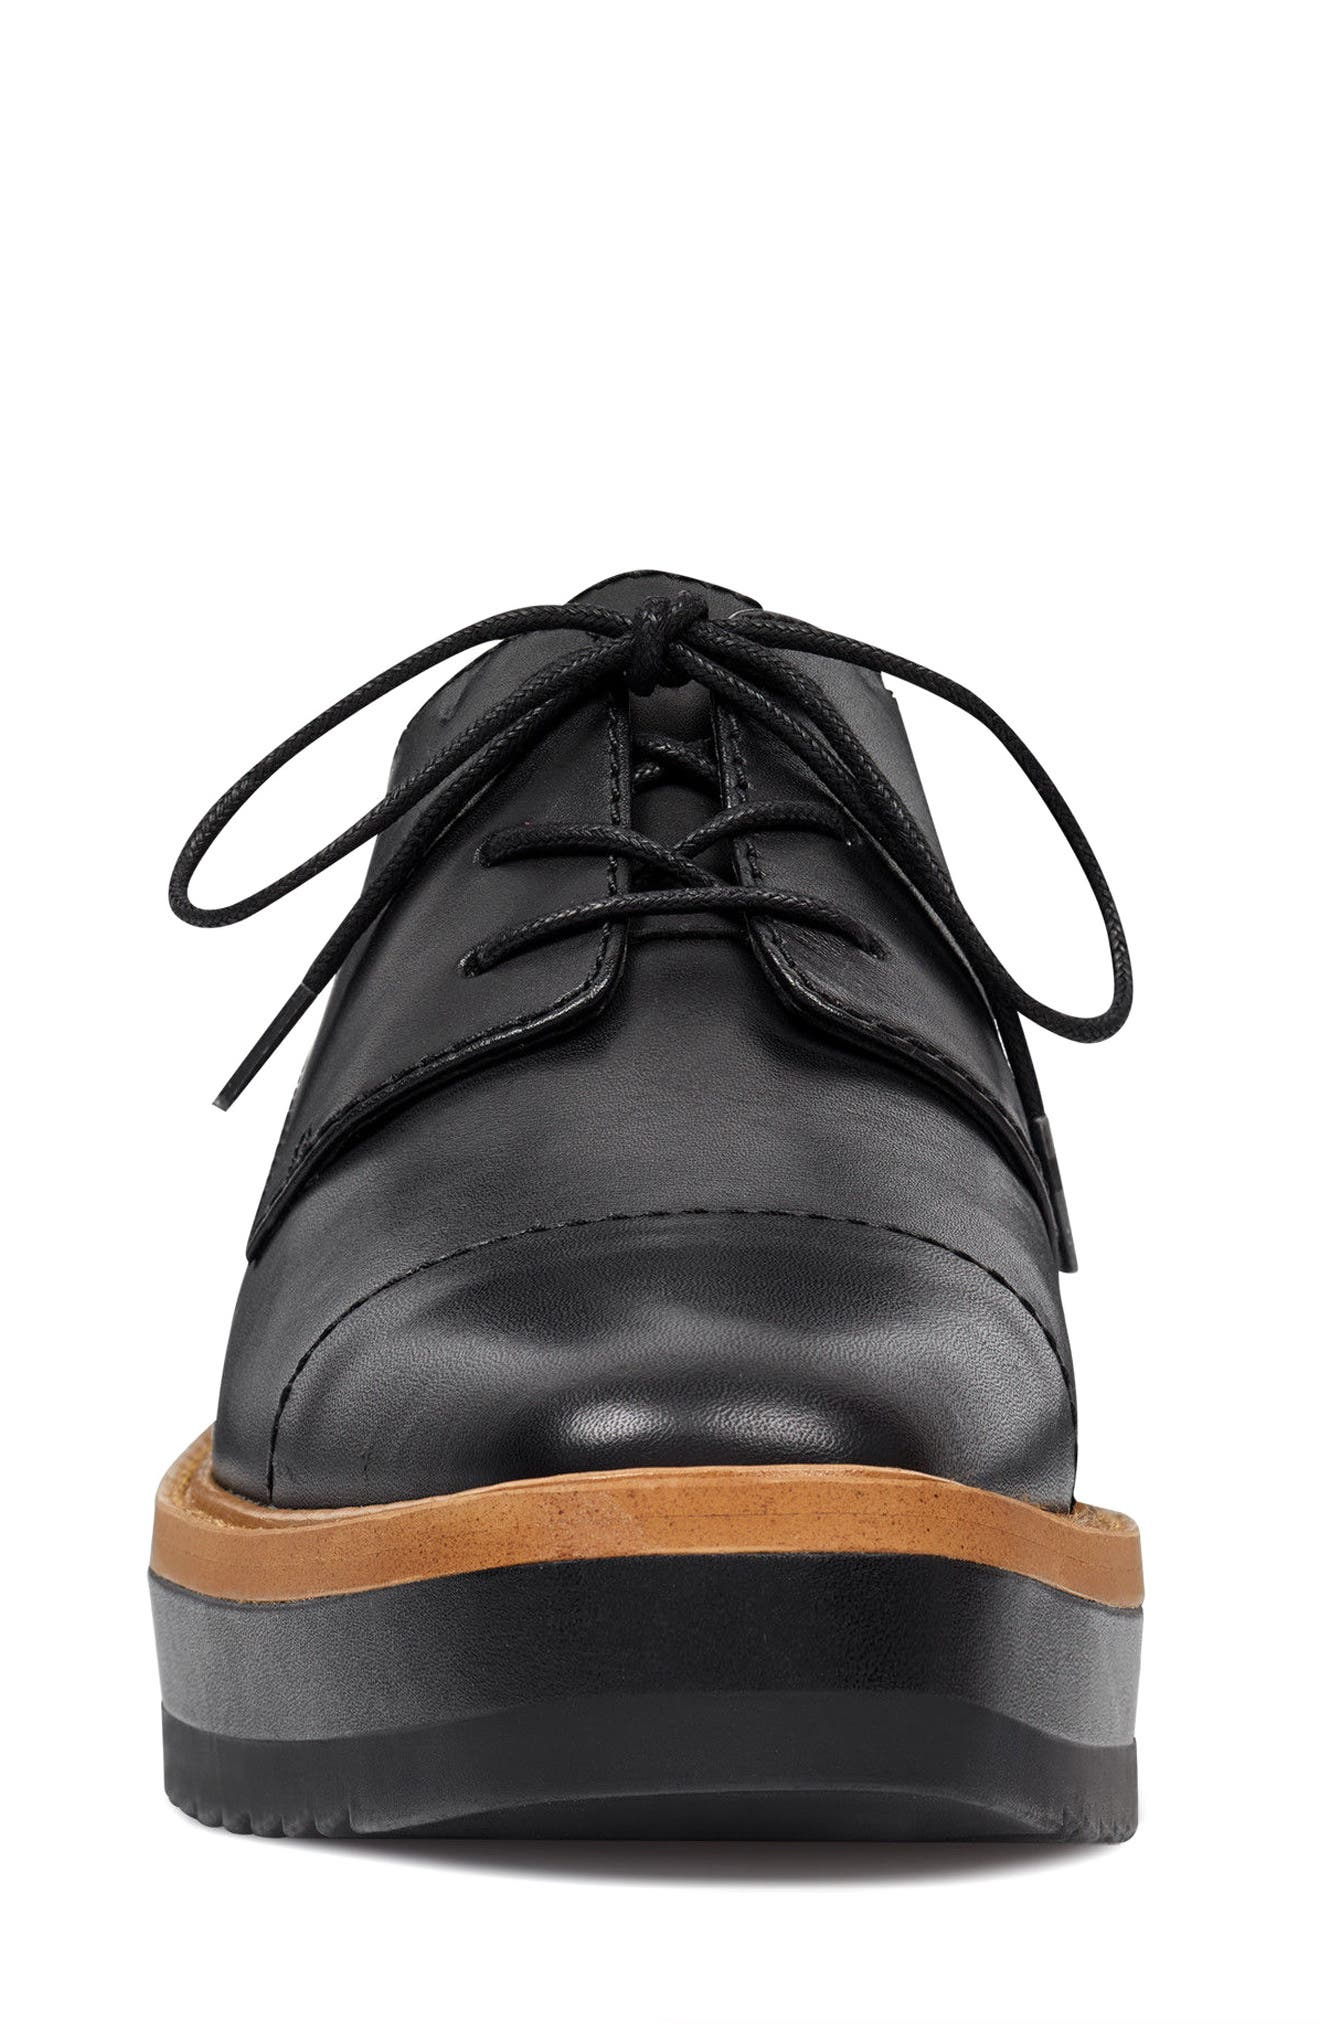 Vada Oxford,                             Alternate thumbnail 4, color,                             Black Leather